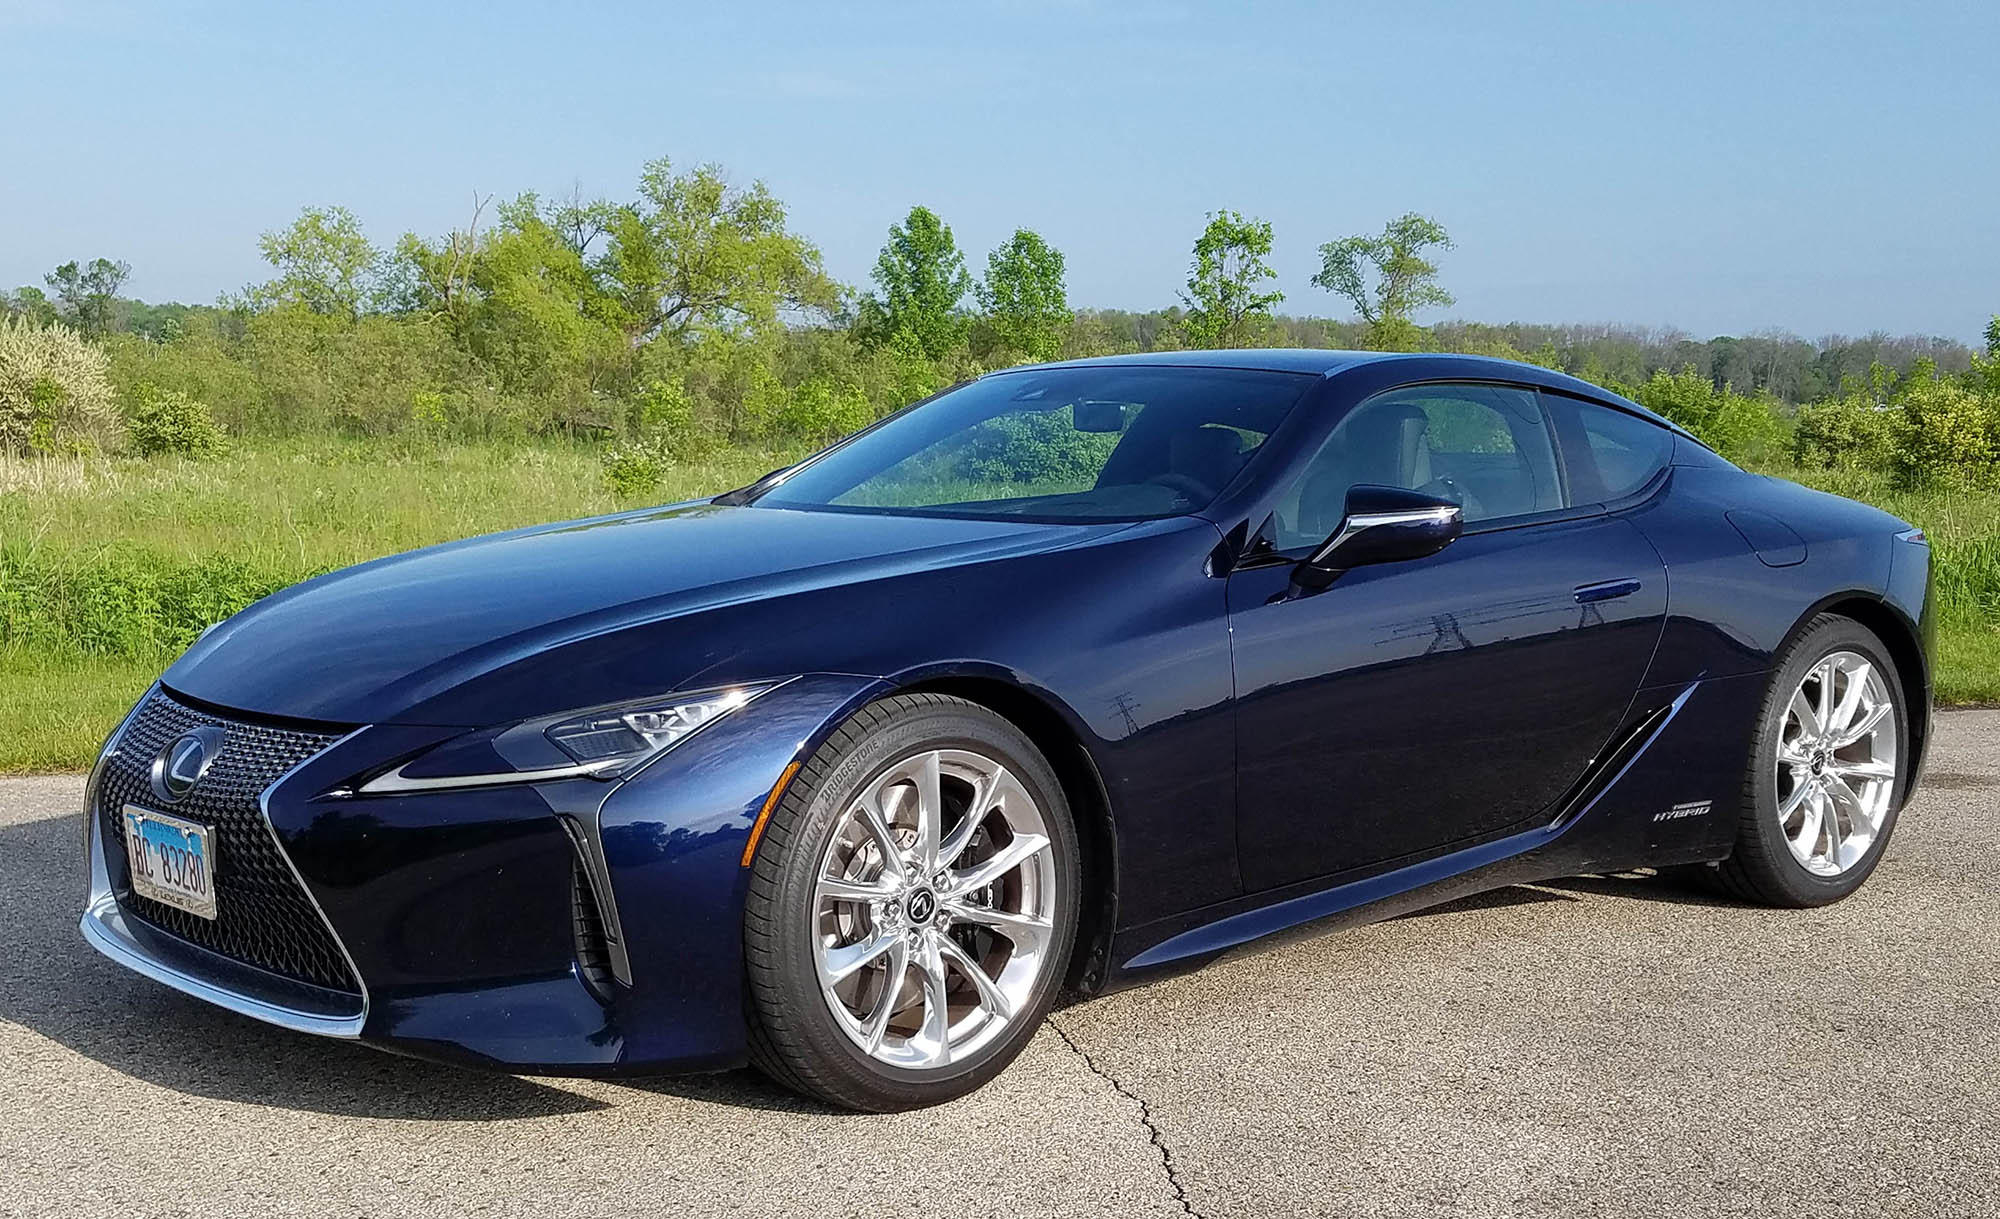 2019 Lexus LC 500h Owners Manual